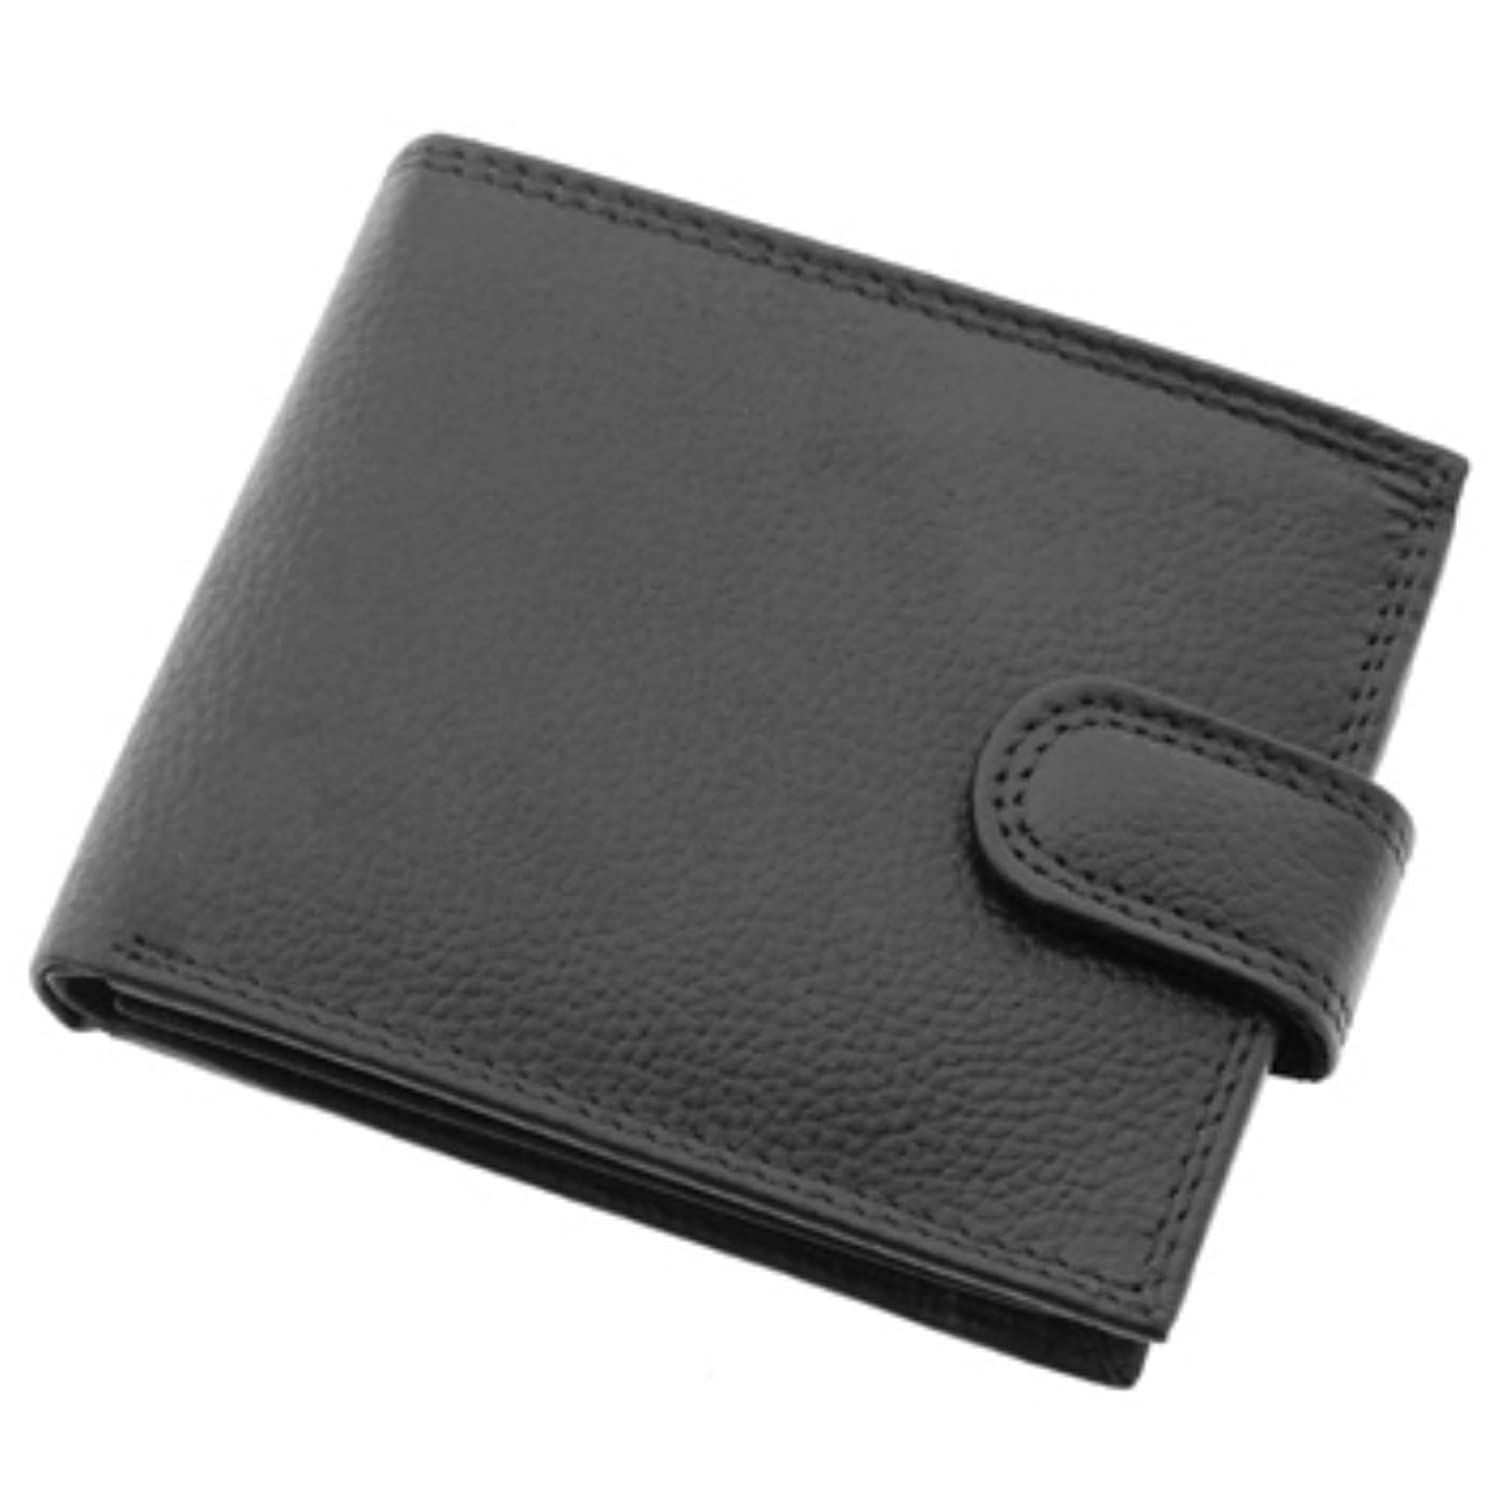 Mens Black Leather Wallet - Bruno Antonini, Coin Purse/Credit Cards, 101